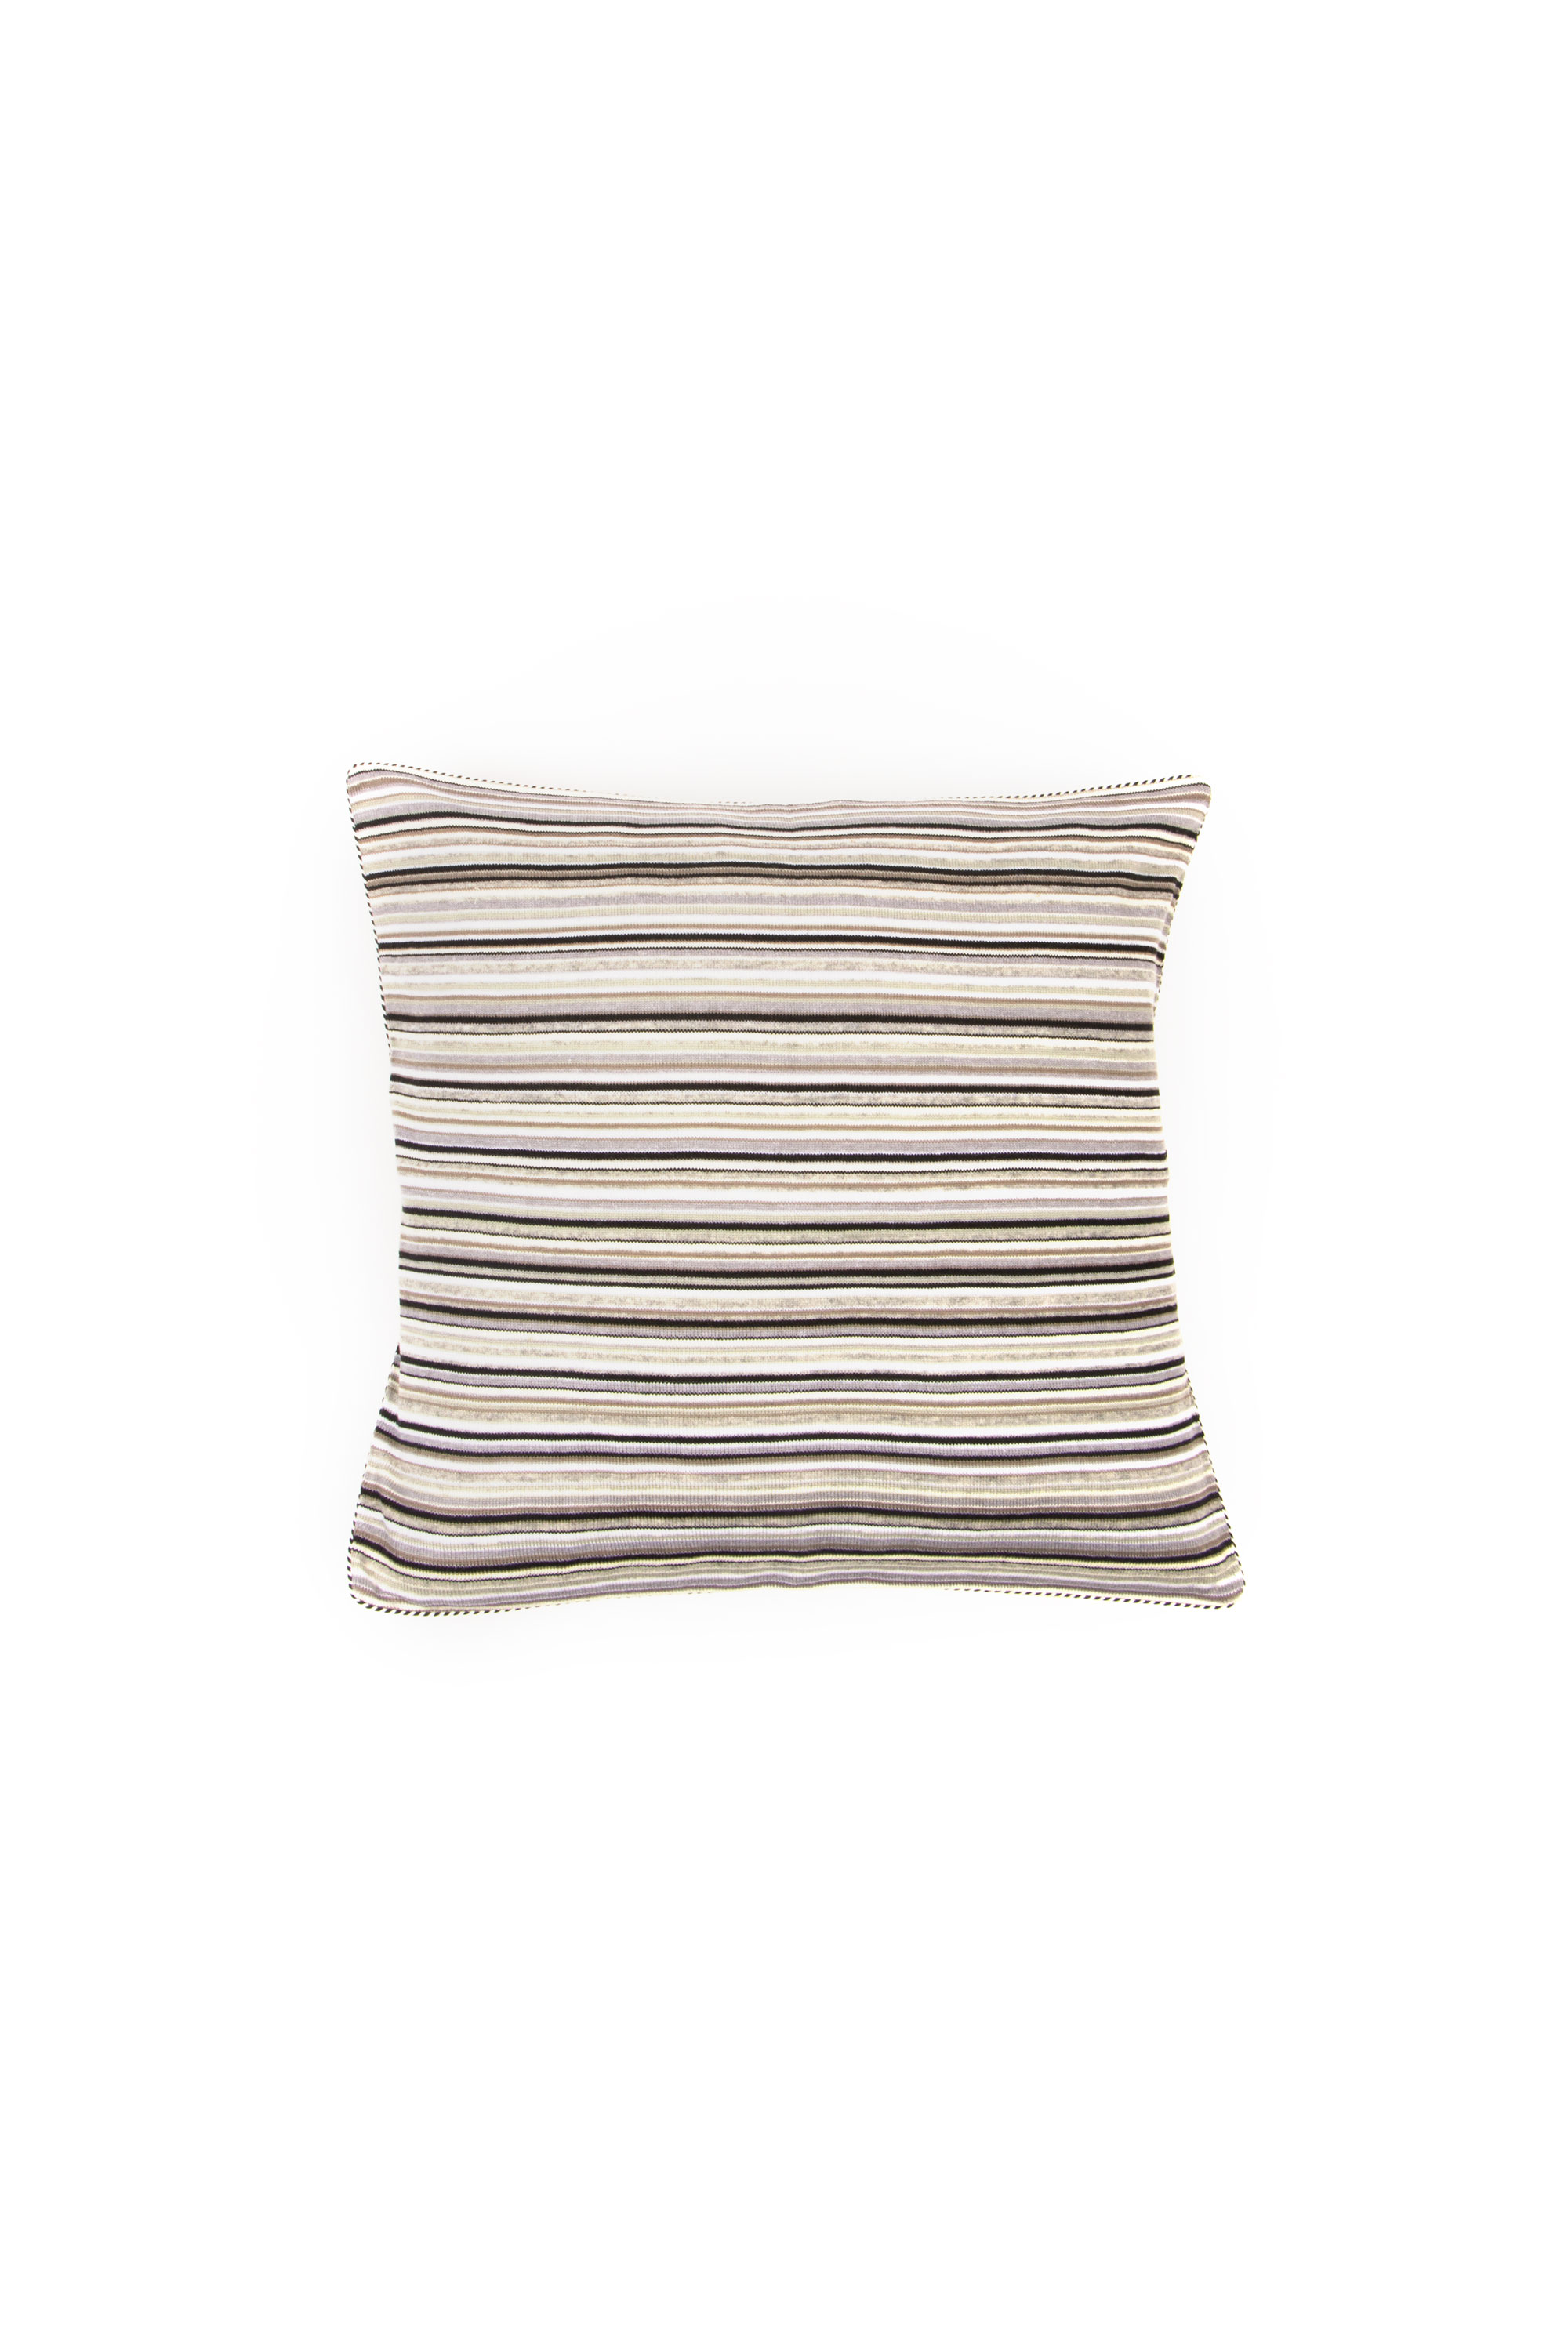 Small Knitted Cushion Tipy